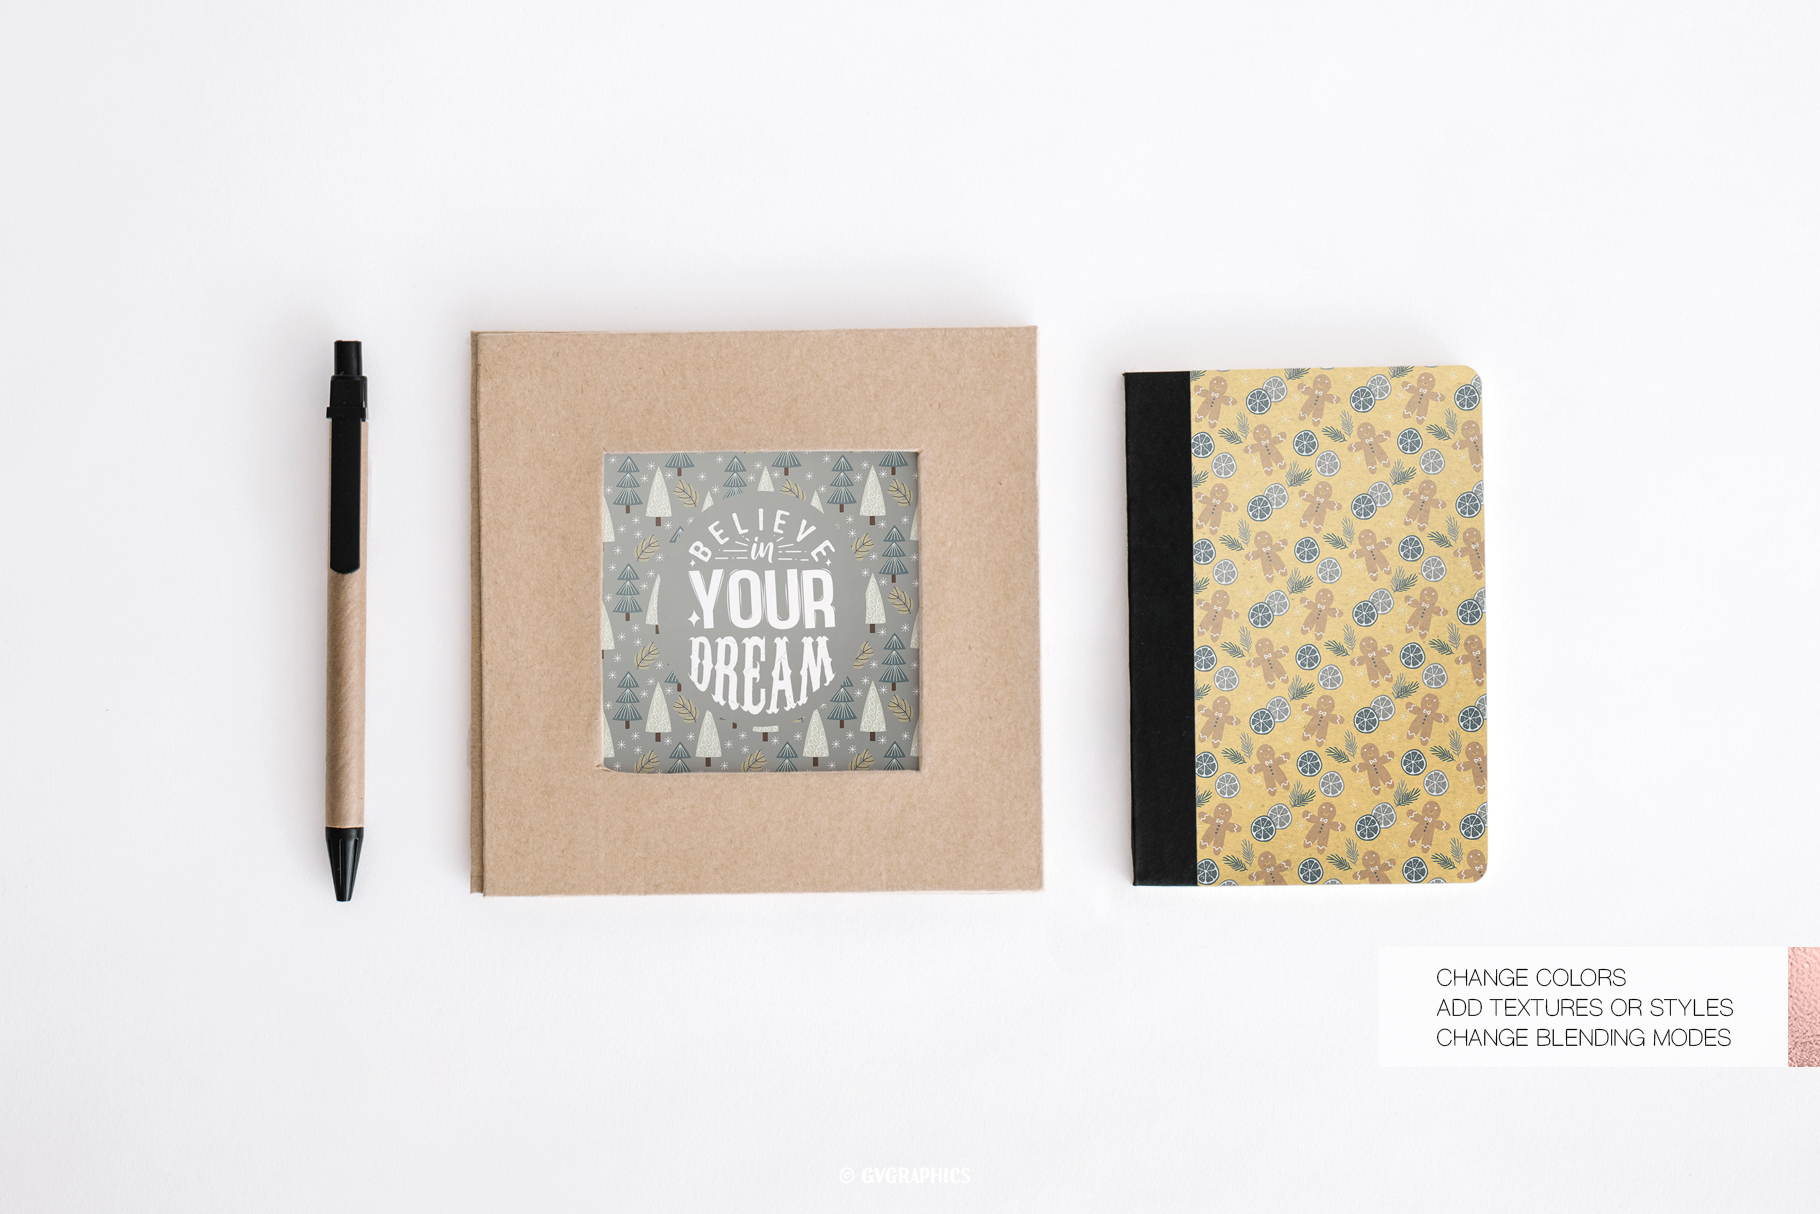 Notebook and Art Poster Made On The Basis Christmas Seamless Patterns.